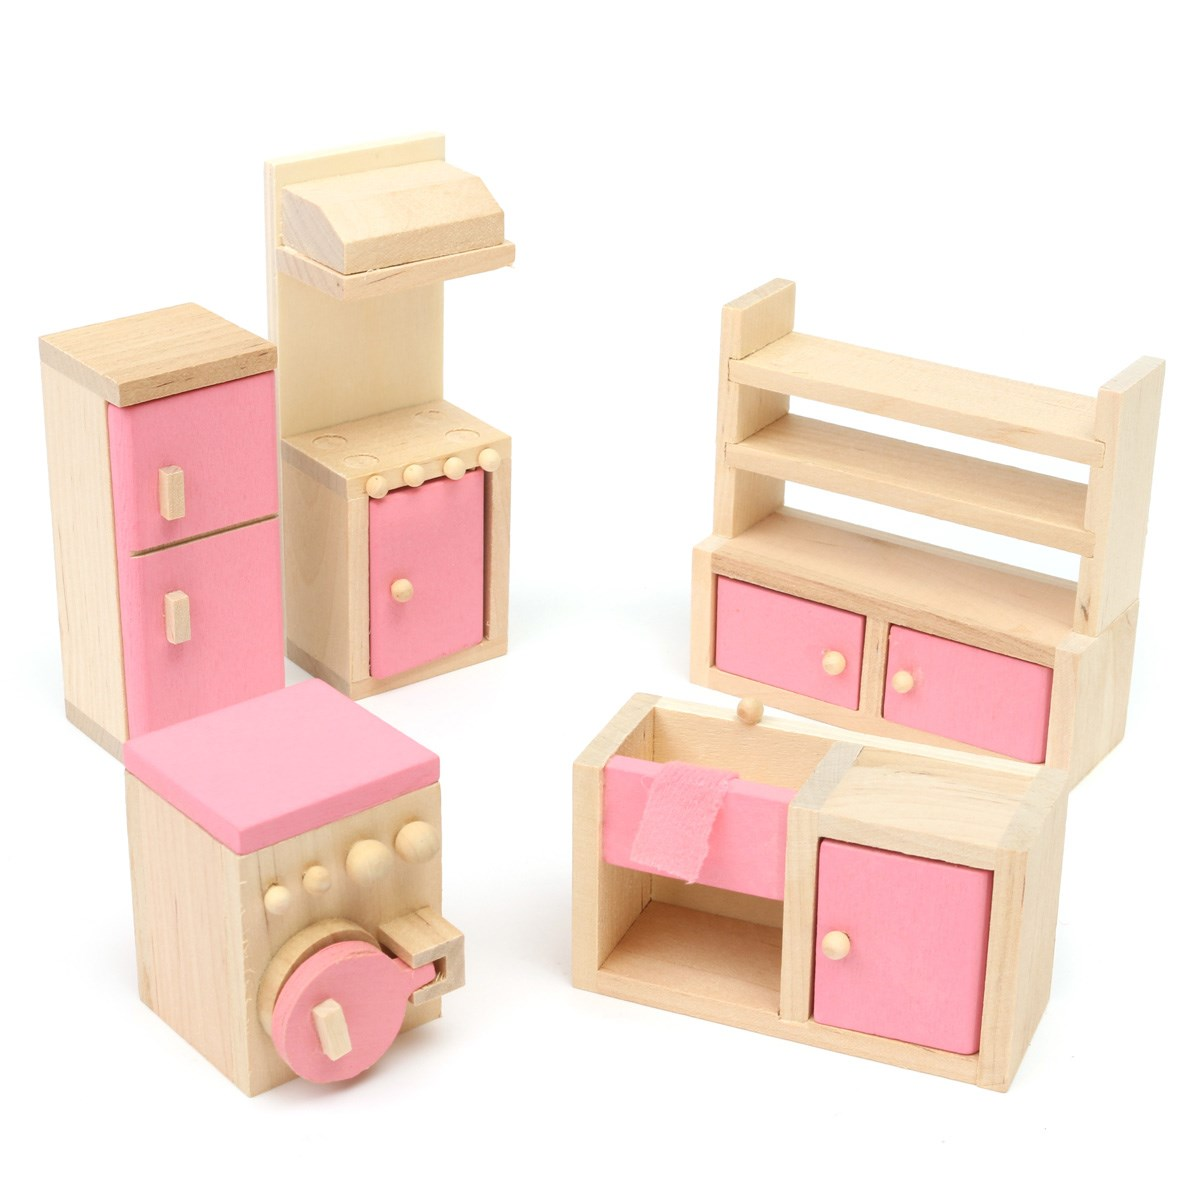 dollhouse furniture cheap. Wooden Delicate Dollhouse Furniture Toys Miniature For Kids Children Pretend Play 6 Room Set/4 Dolls Toys-in From \u0026 Hobbies On Cheap A